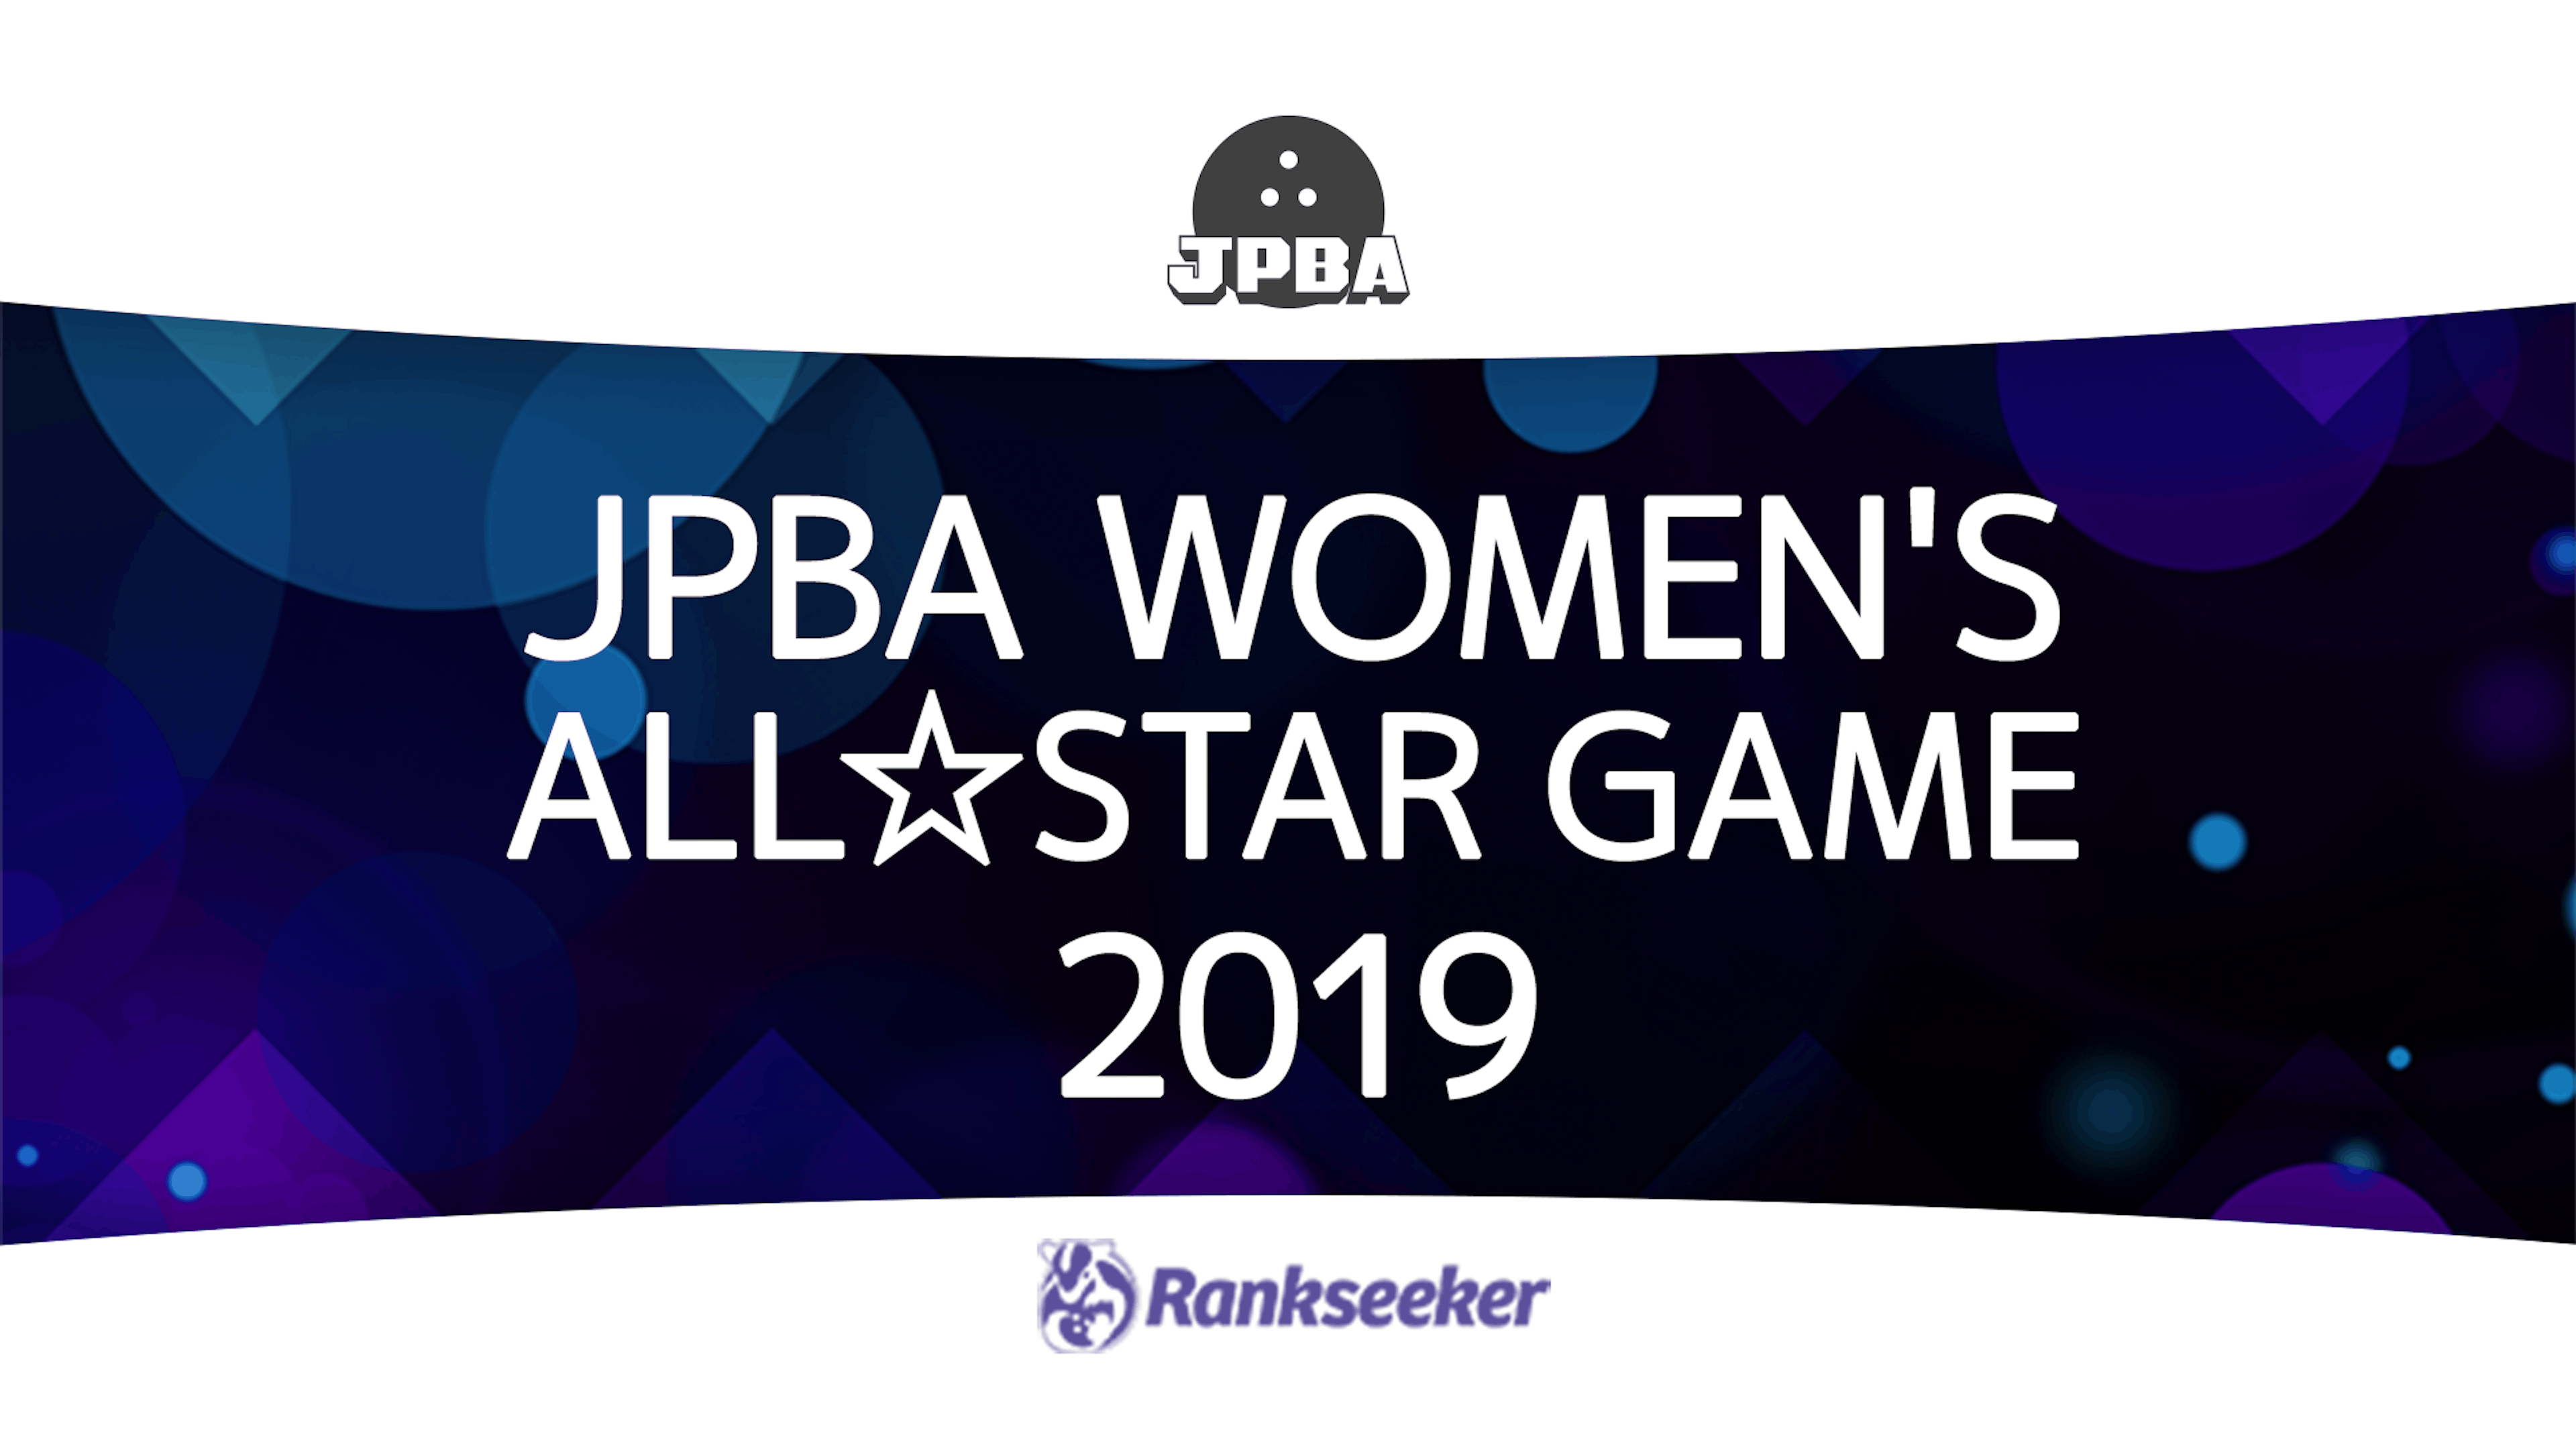 JPBA WOMEN'S ALL☆STAR GAME 2019